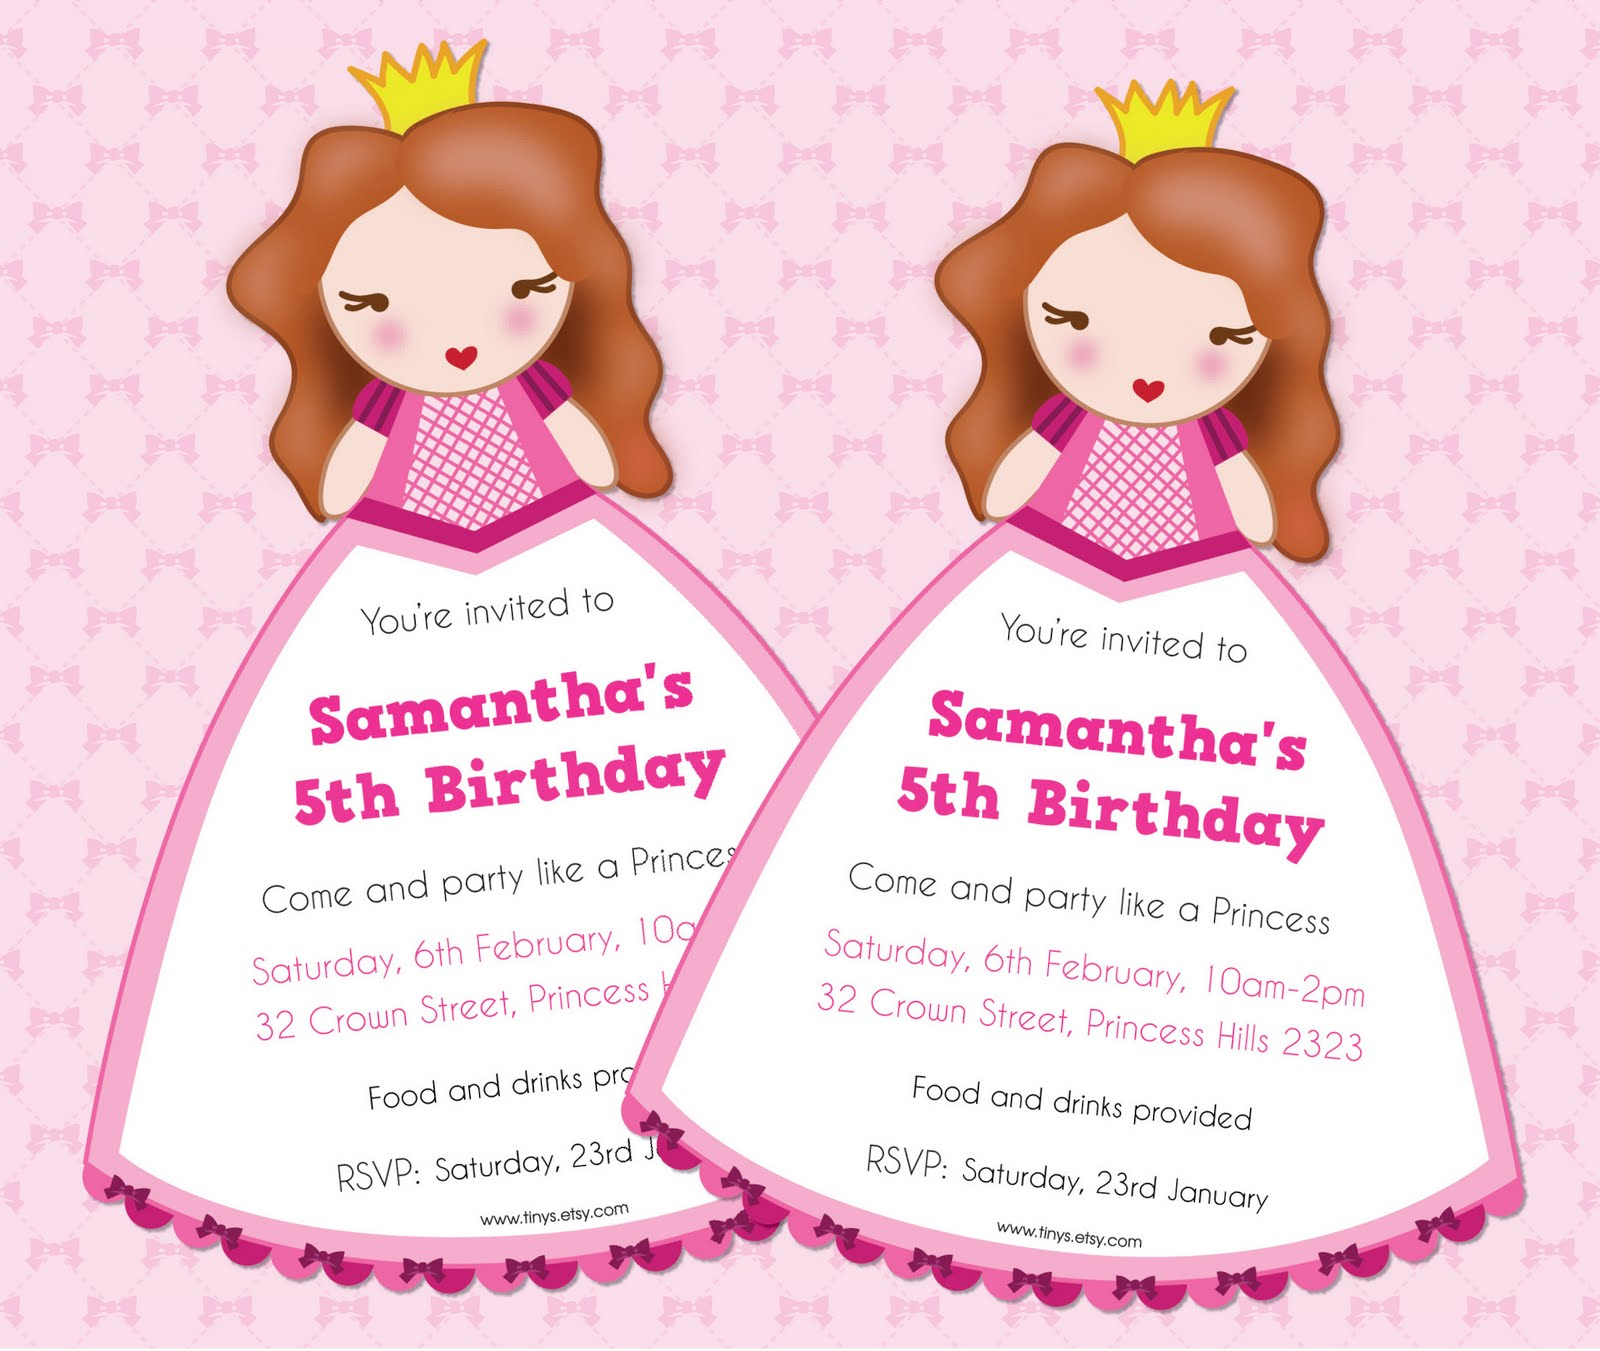 Tinysandtea free princess invite editable text free princess invite editable text filmwisefo Images